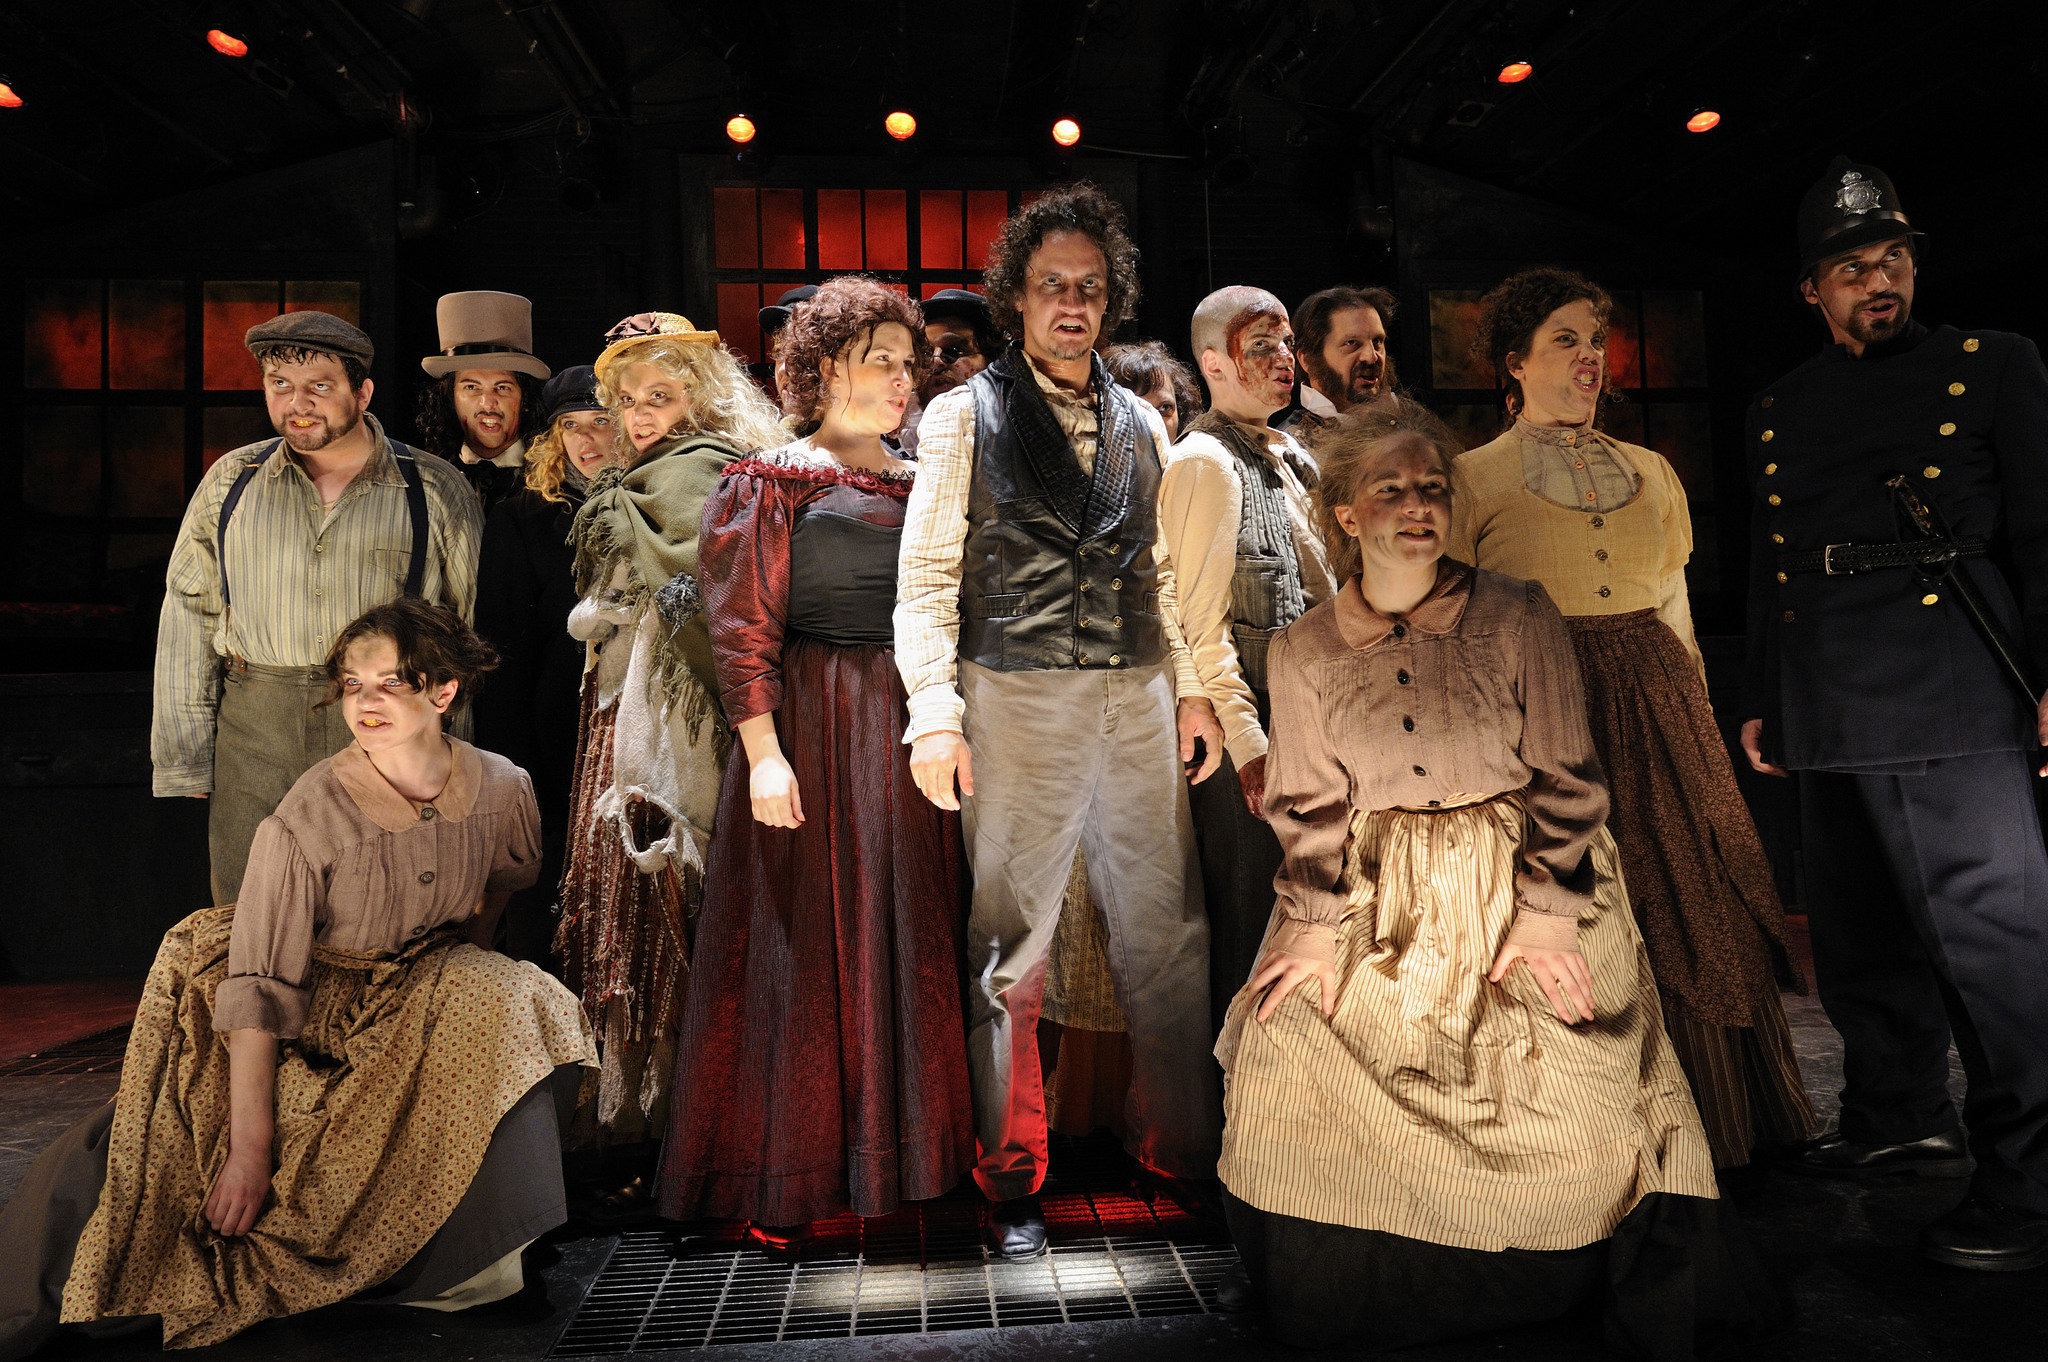 Character Design Jobs Nyc : Sweeney todd the view from stage